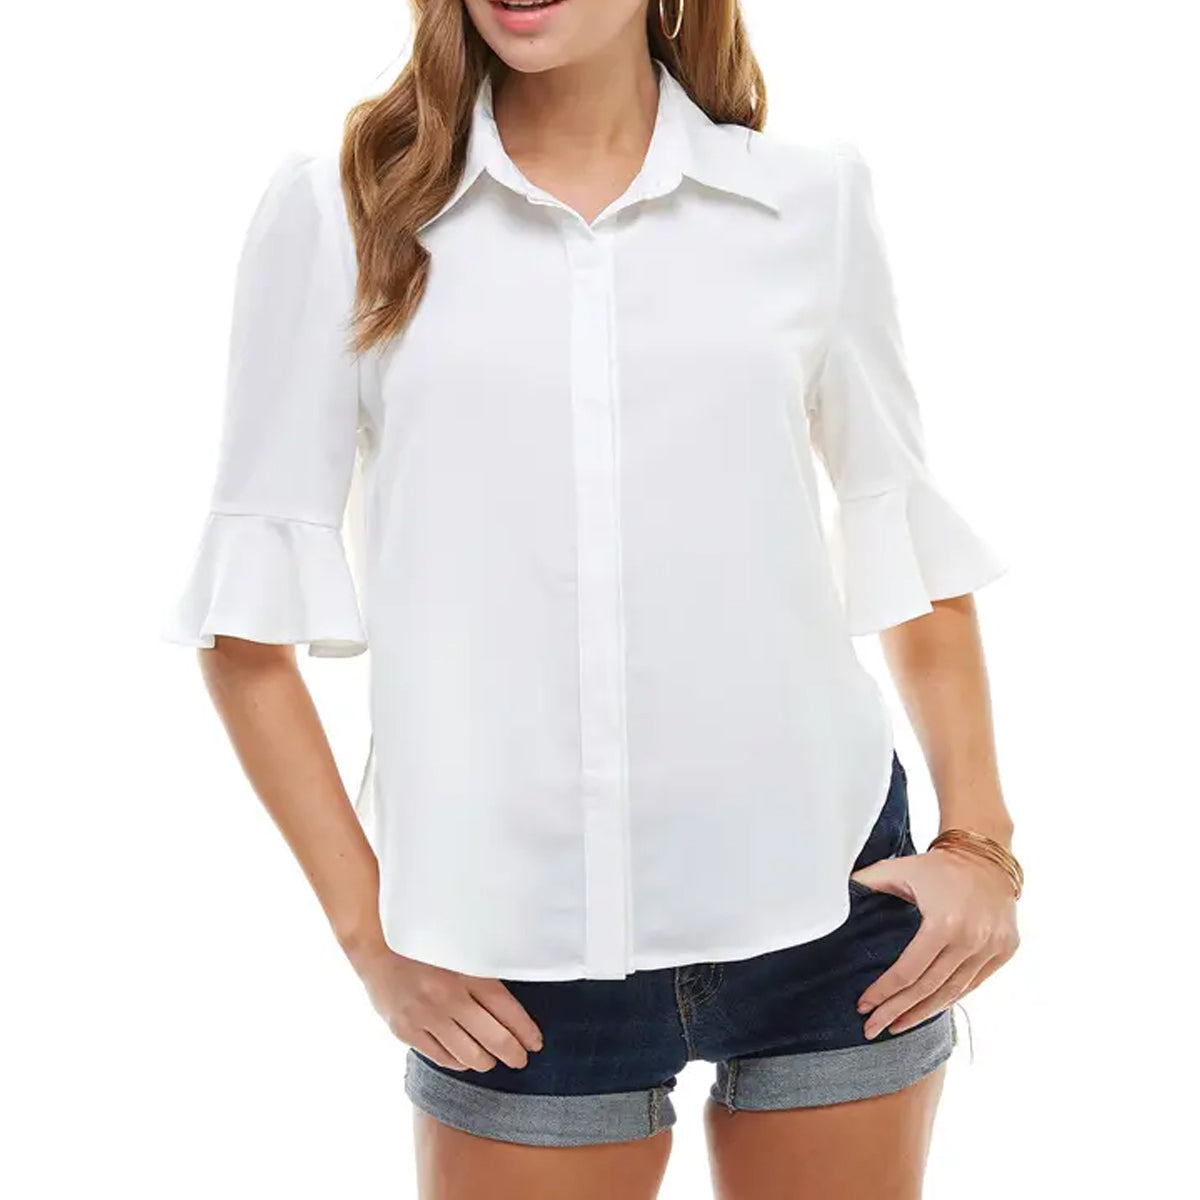 TCEC Women's Button Down Top - White